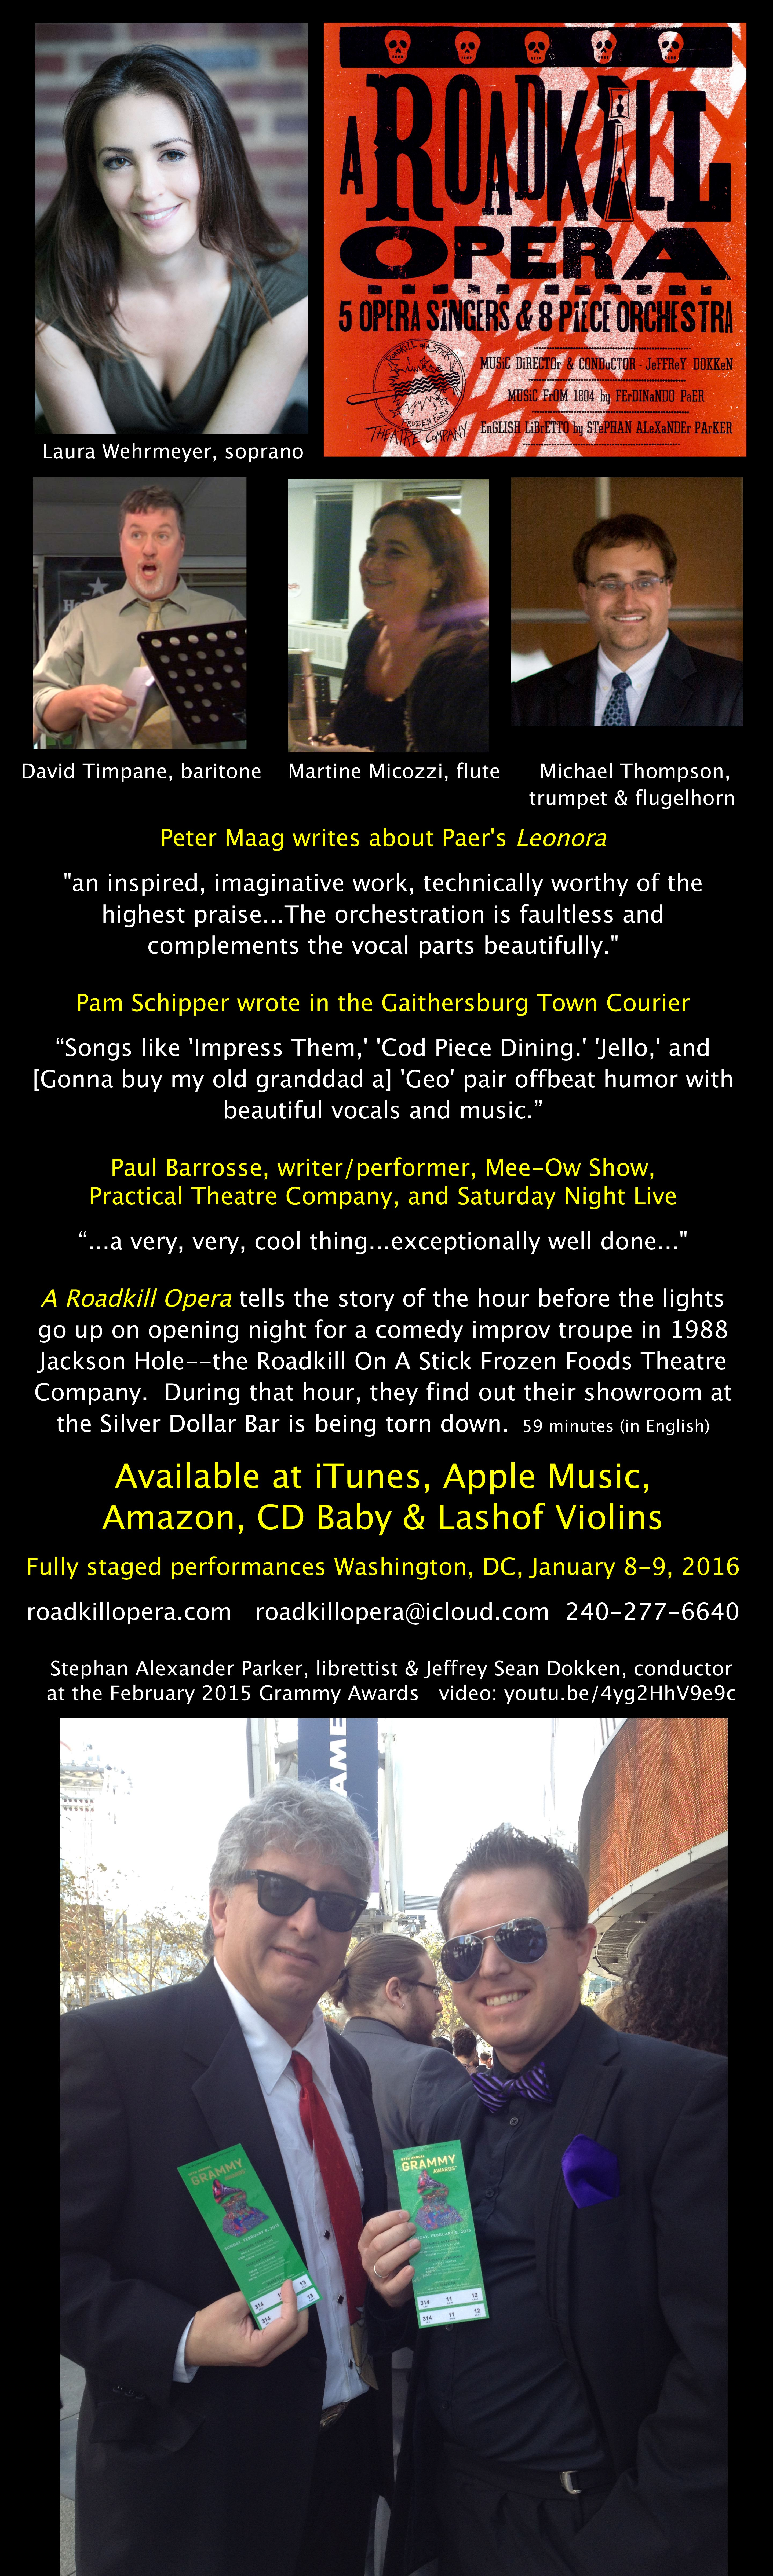 24 inch by 40 inch banner with quotes from reviews of A Roadkill Opera and Ferdinando Paer's Leonora